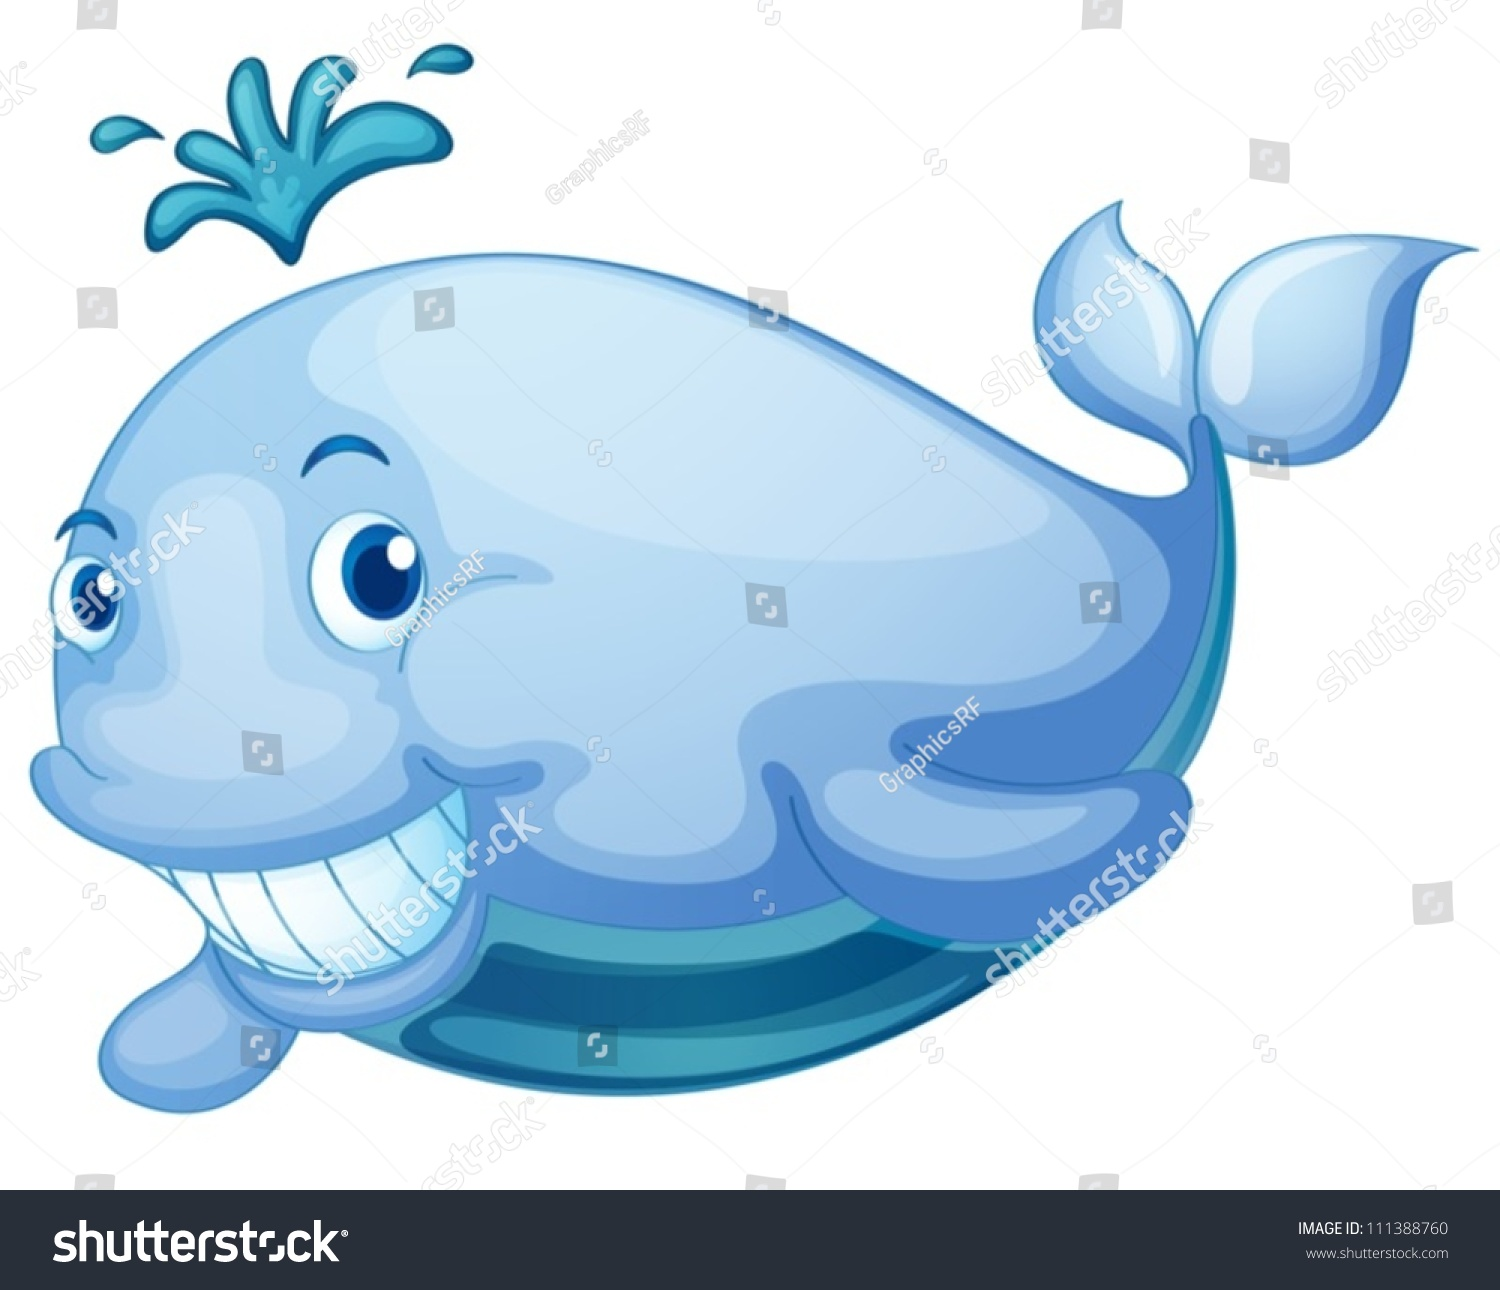 Cute whale in water cartoon isolated illustration stock photography - Illustration Of A Cute Whale